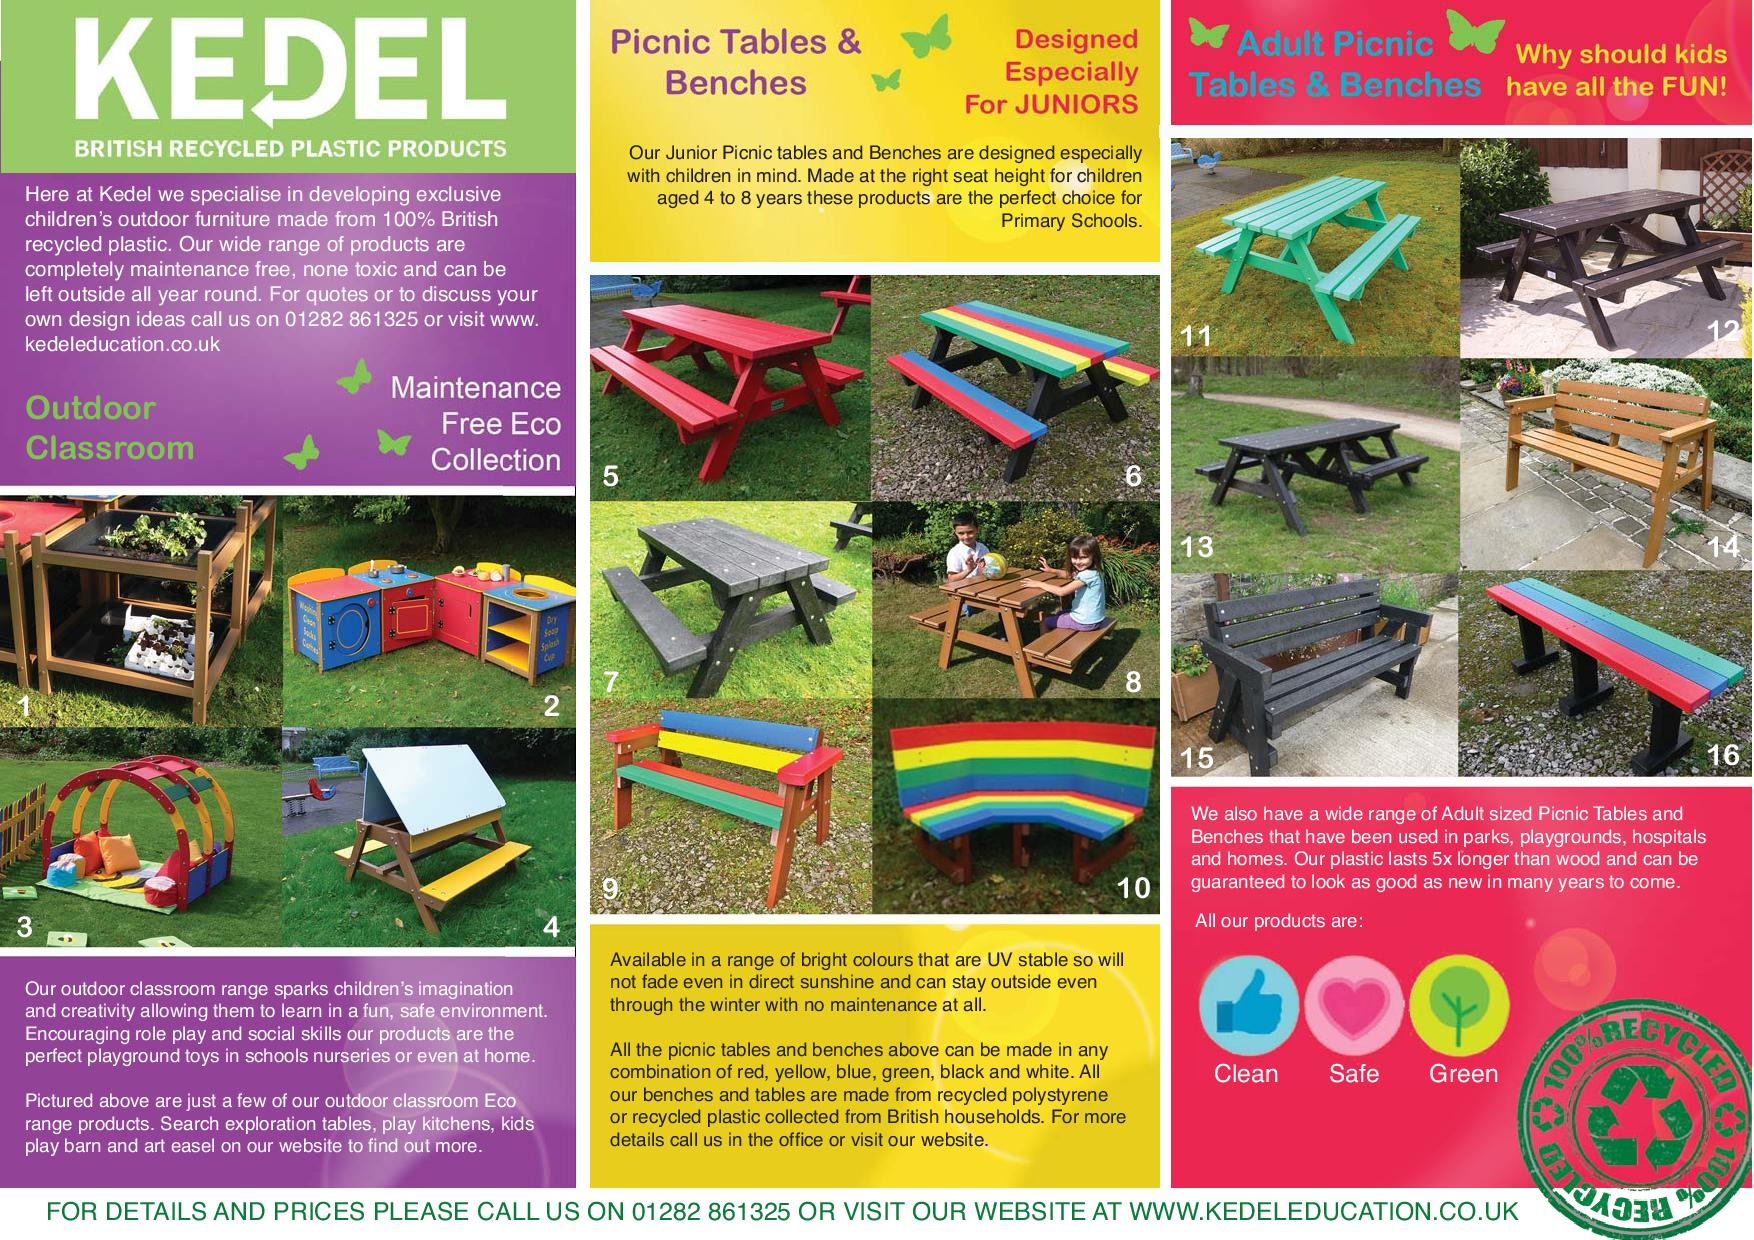 Recycled plastic for education - key advantages leaflet